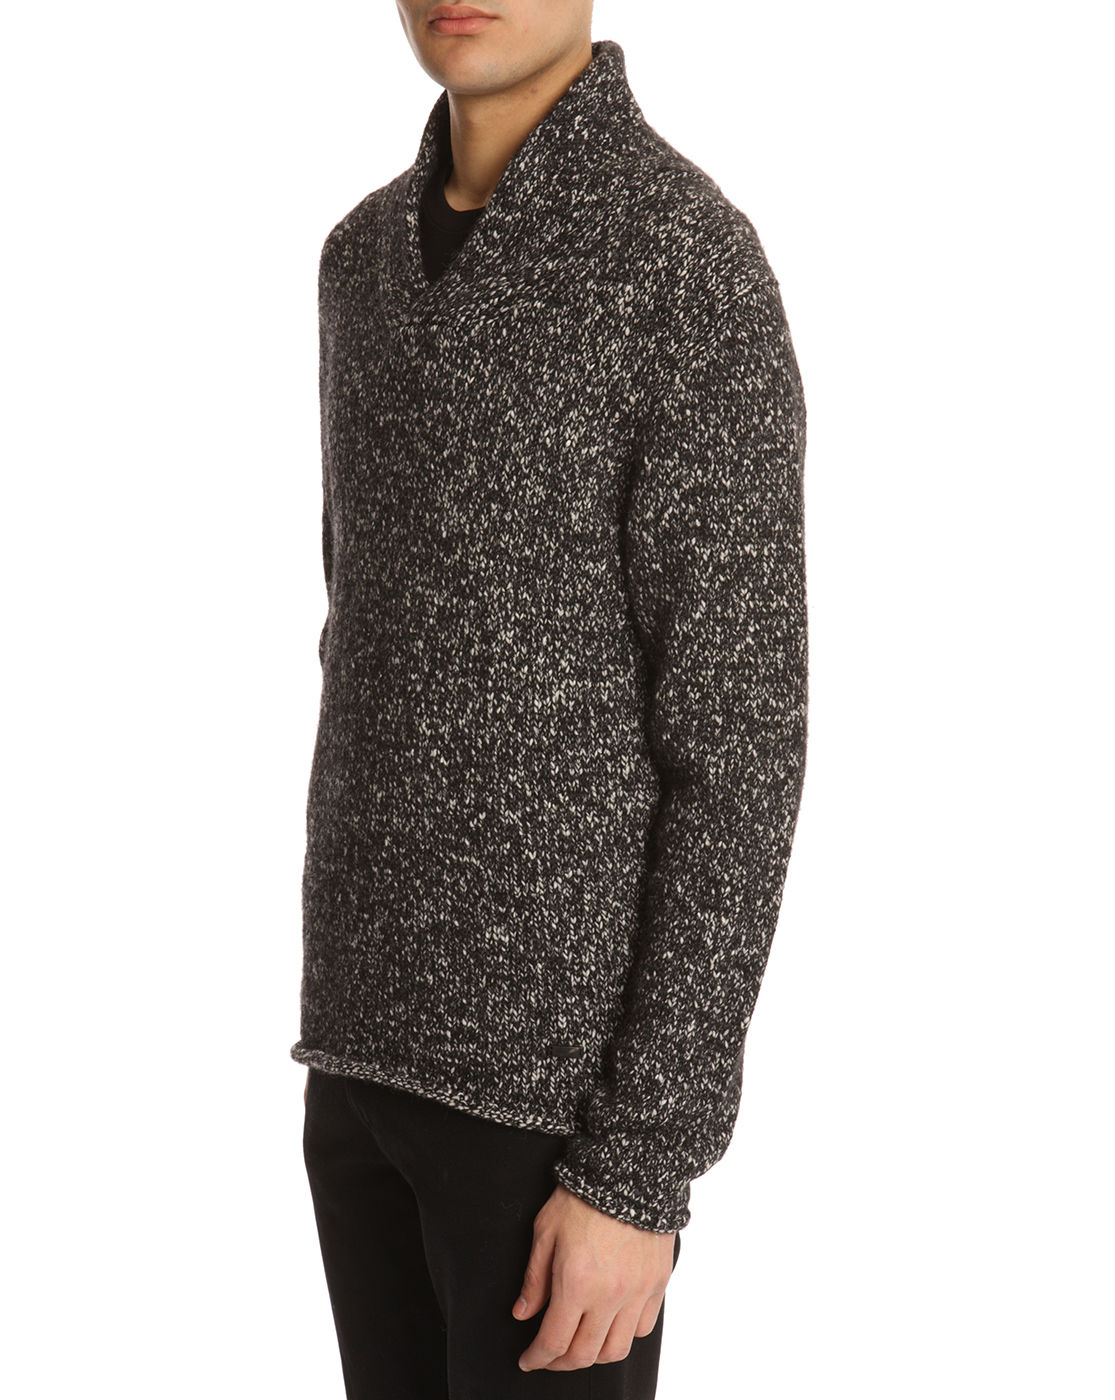 Shop womens shawl collar sweater at Neiman Marcus, where you will find free shipping on the latest in fashion from top designers. Skip To Main Content. FREE SHIPPING + FREE RETURNS EVERY DAY. FALL SHOP THE COLLECTIONS. Available in Black, Blue, Green, Neutral.